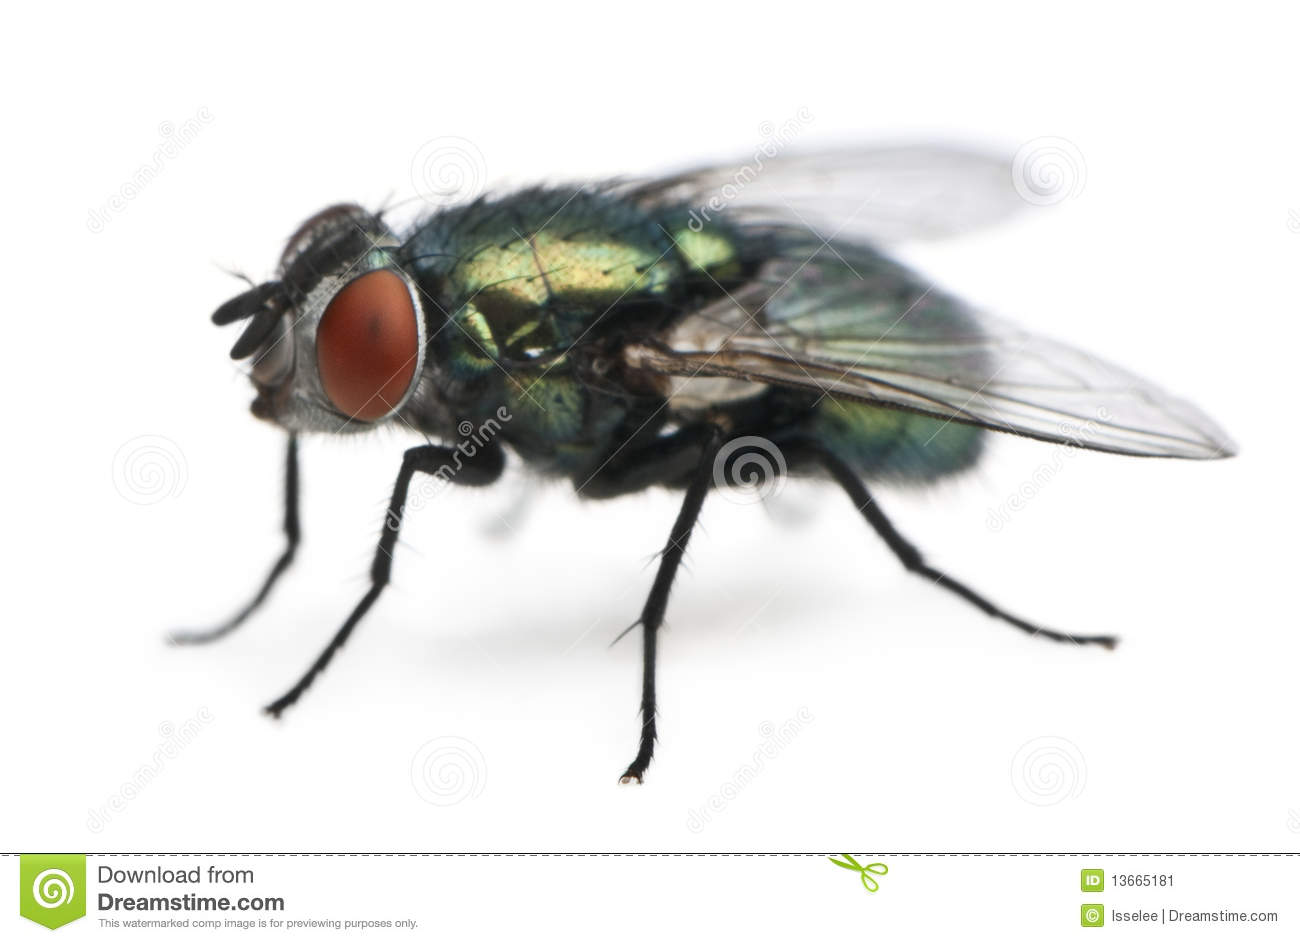 Blowfly clipart #13, Download drawings